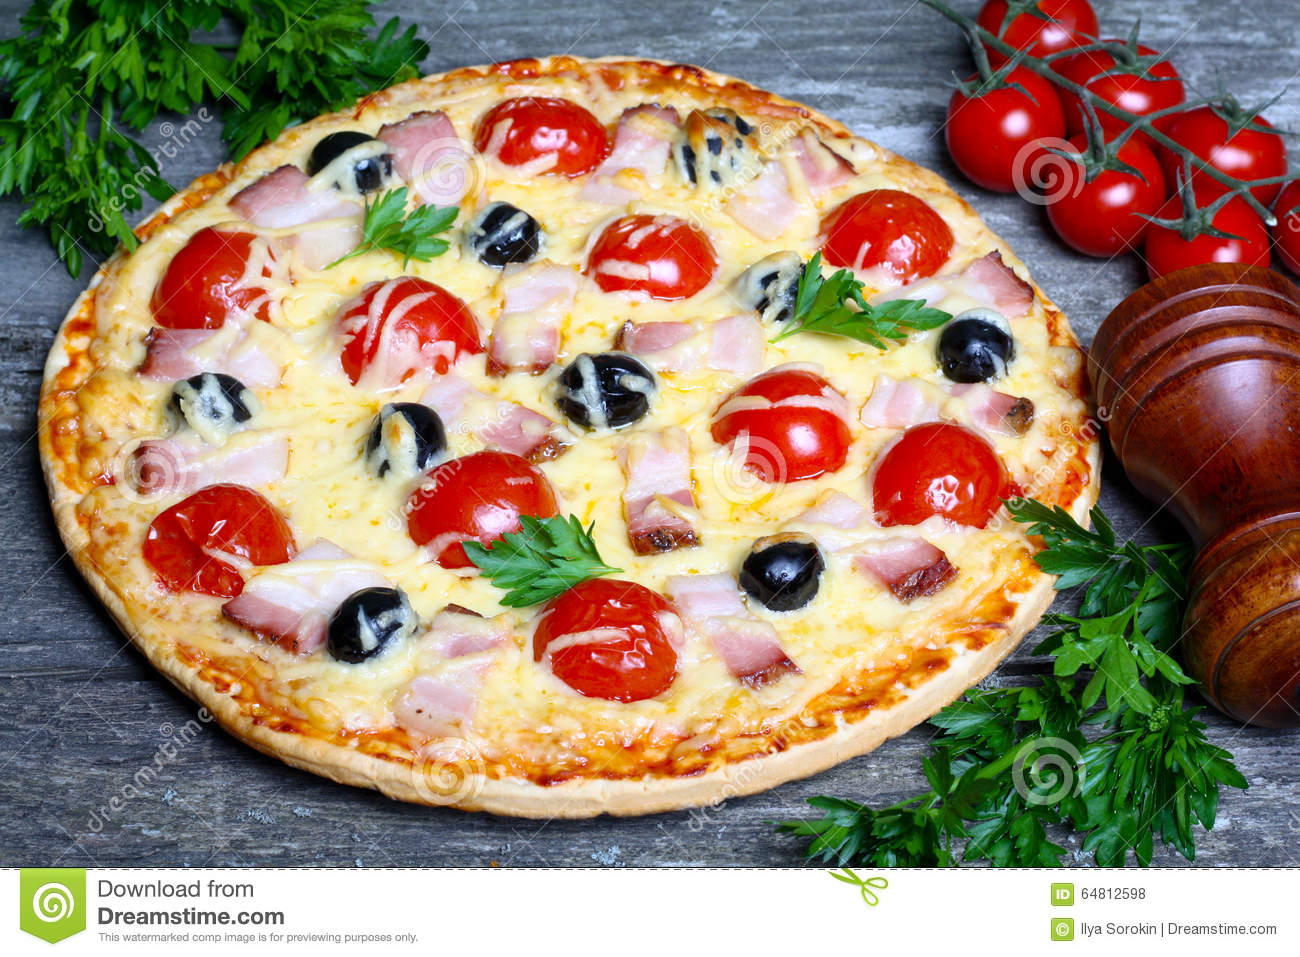 Pizza With Bacon, Olives And Tomato Stock Photo - Image: 64812598